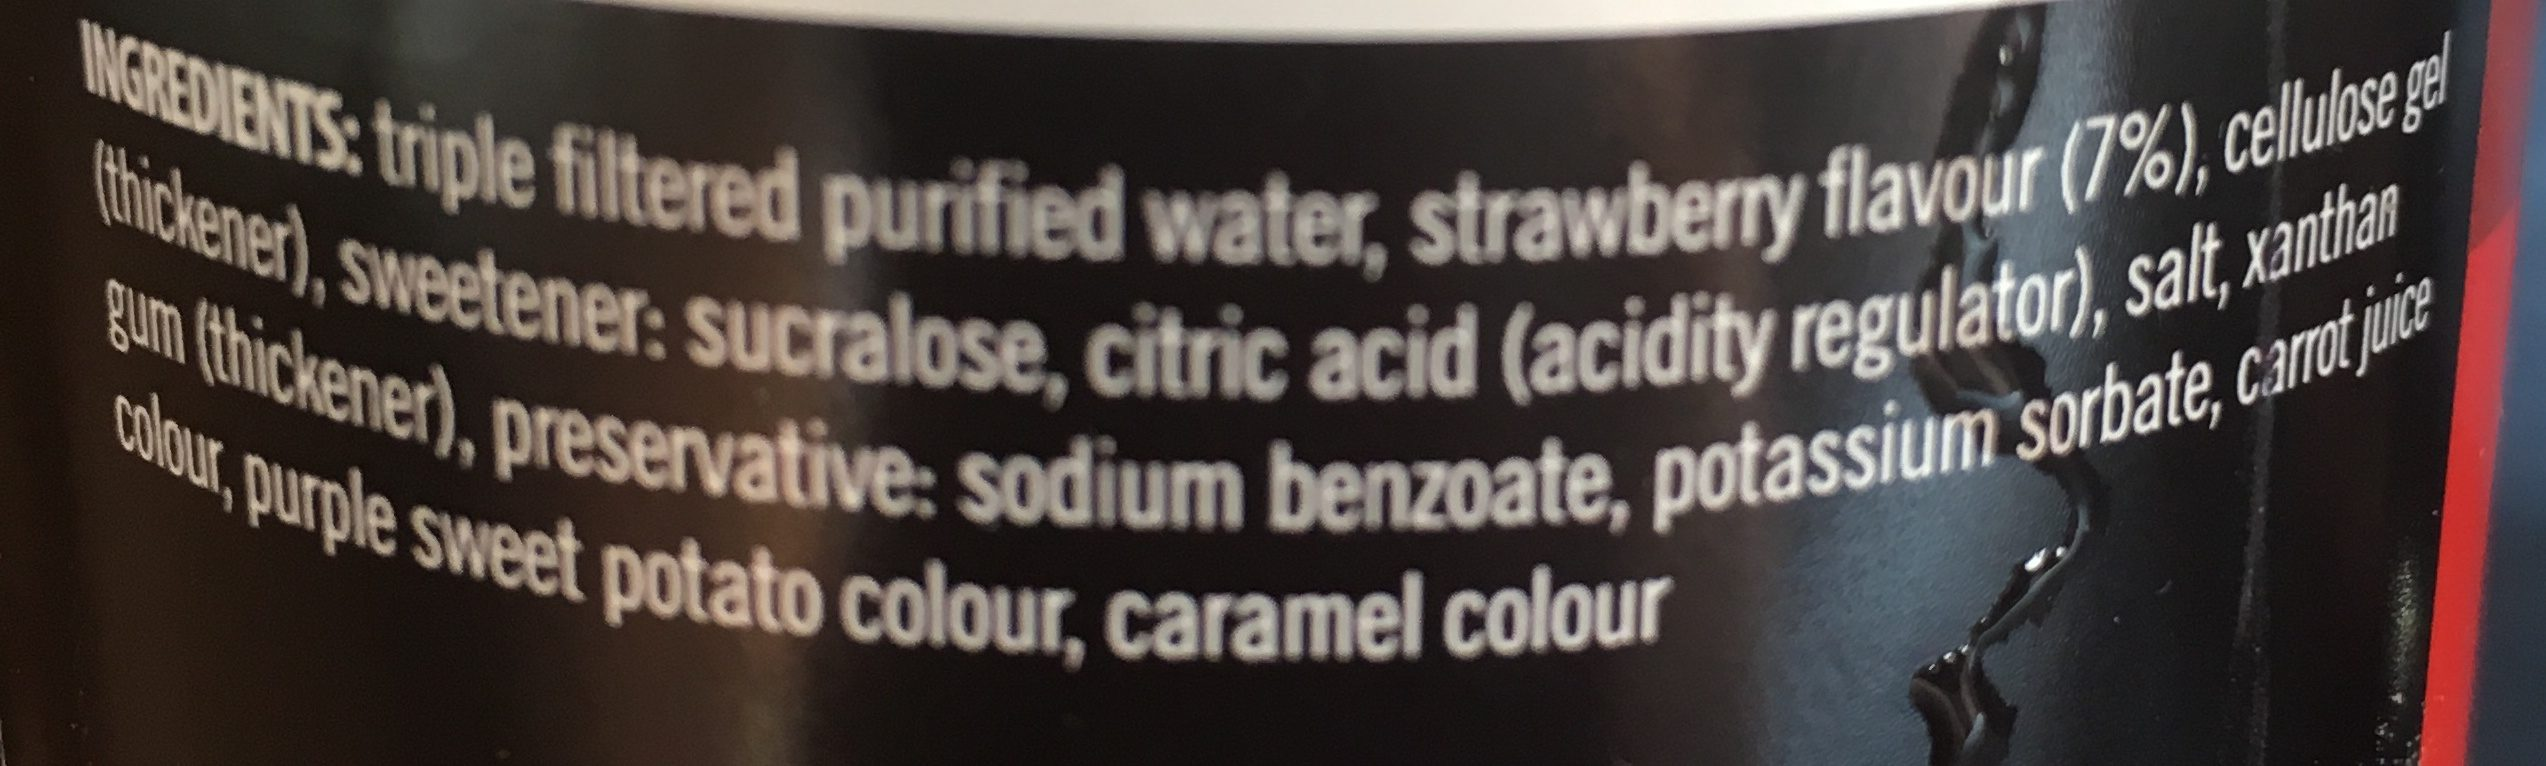 Syrup - Ingredients - en